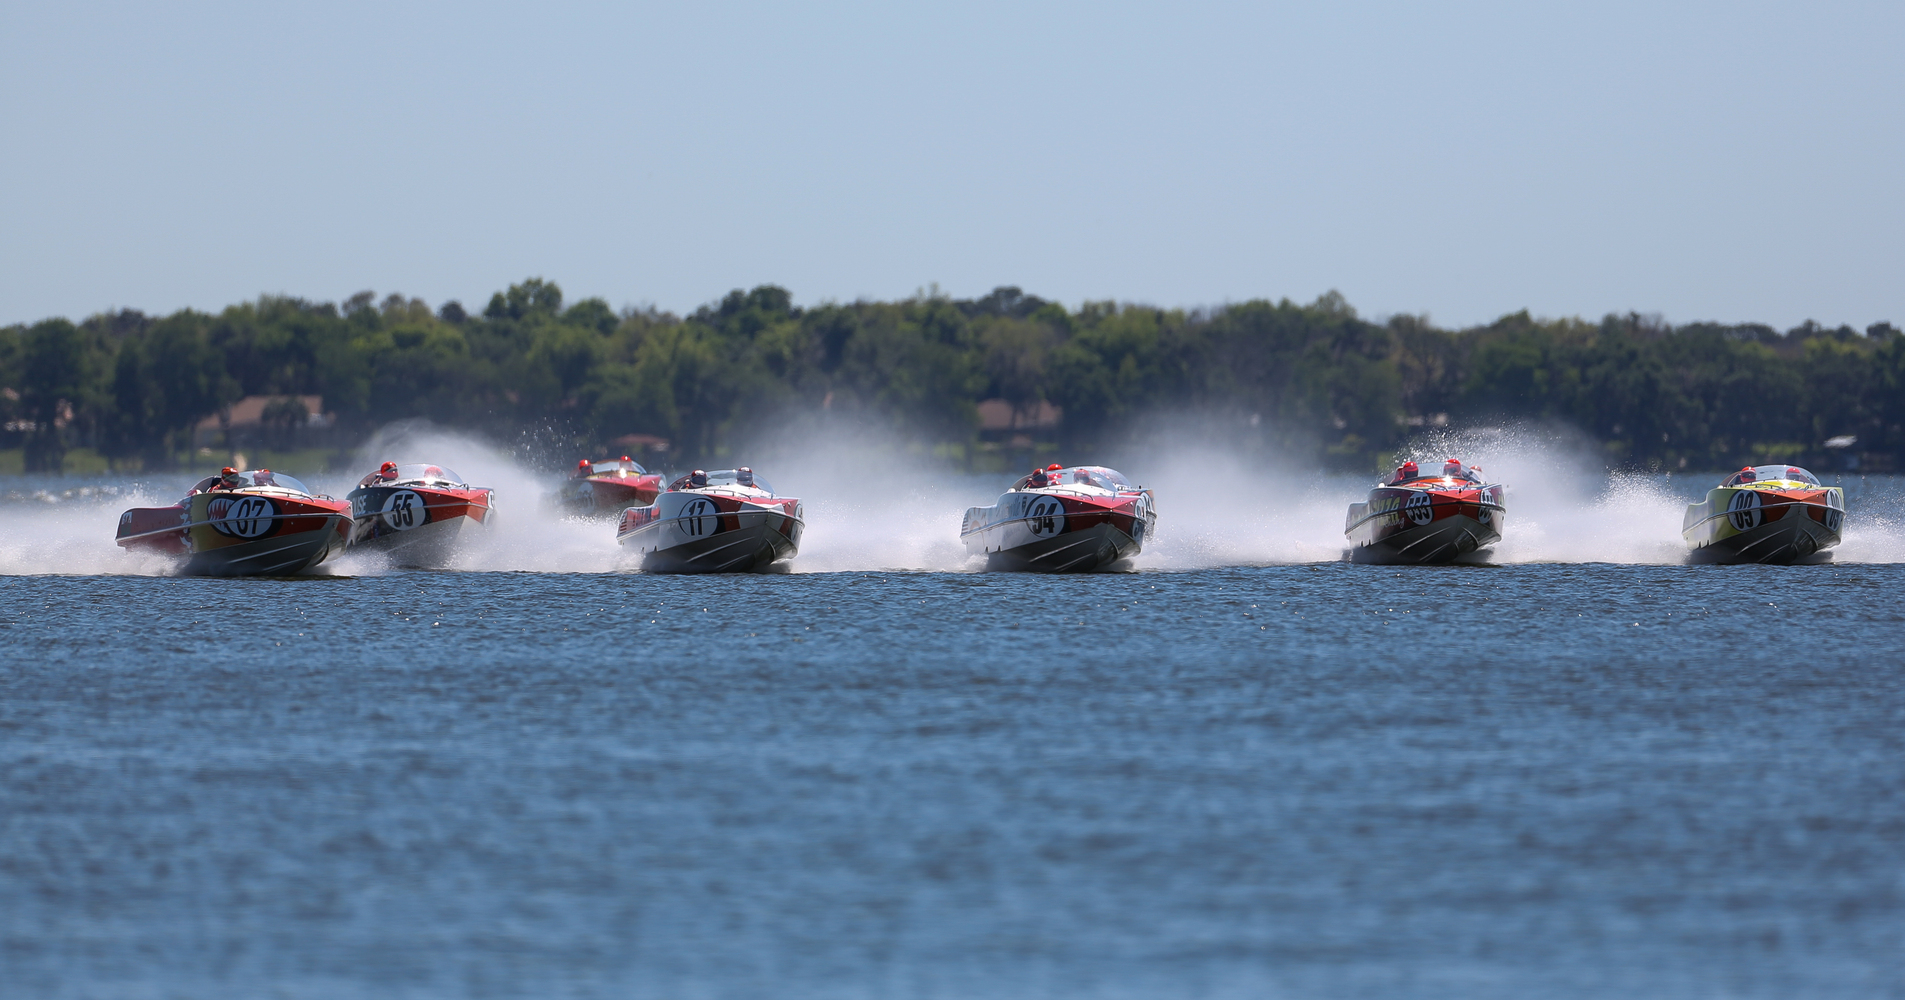 Mercury Racing named presenting sponsor of the 2017 Spectre P1 SuperStock USA Championship